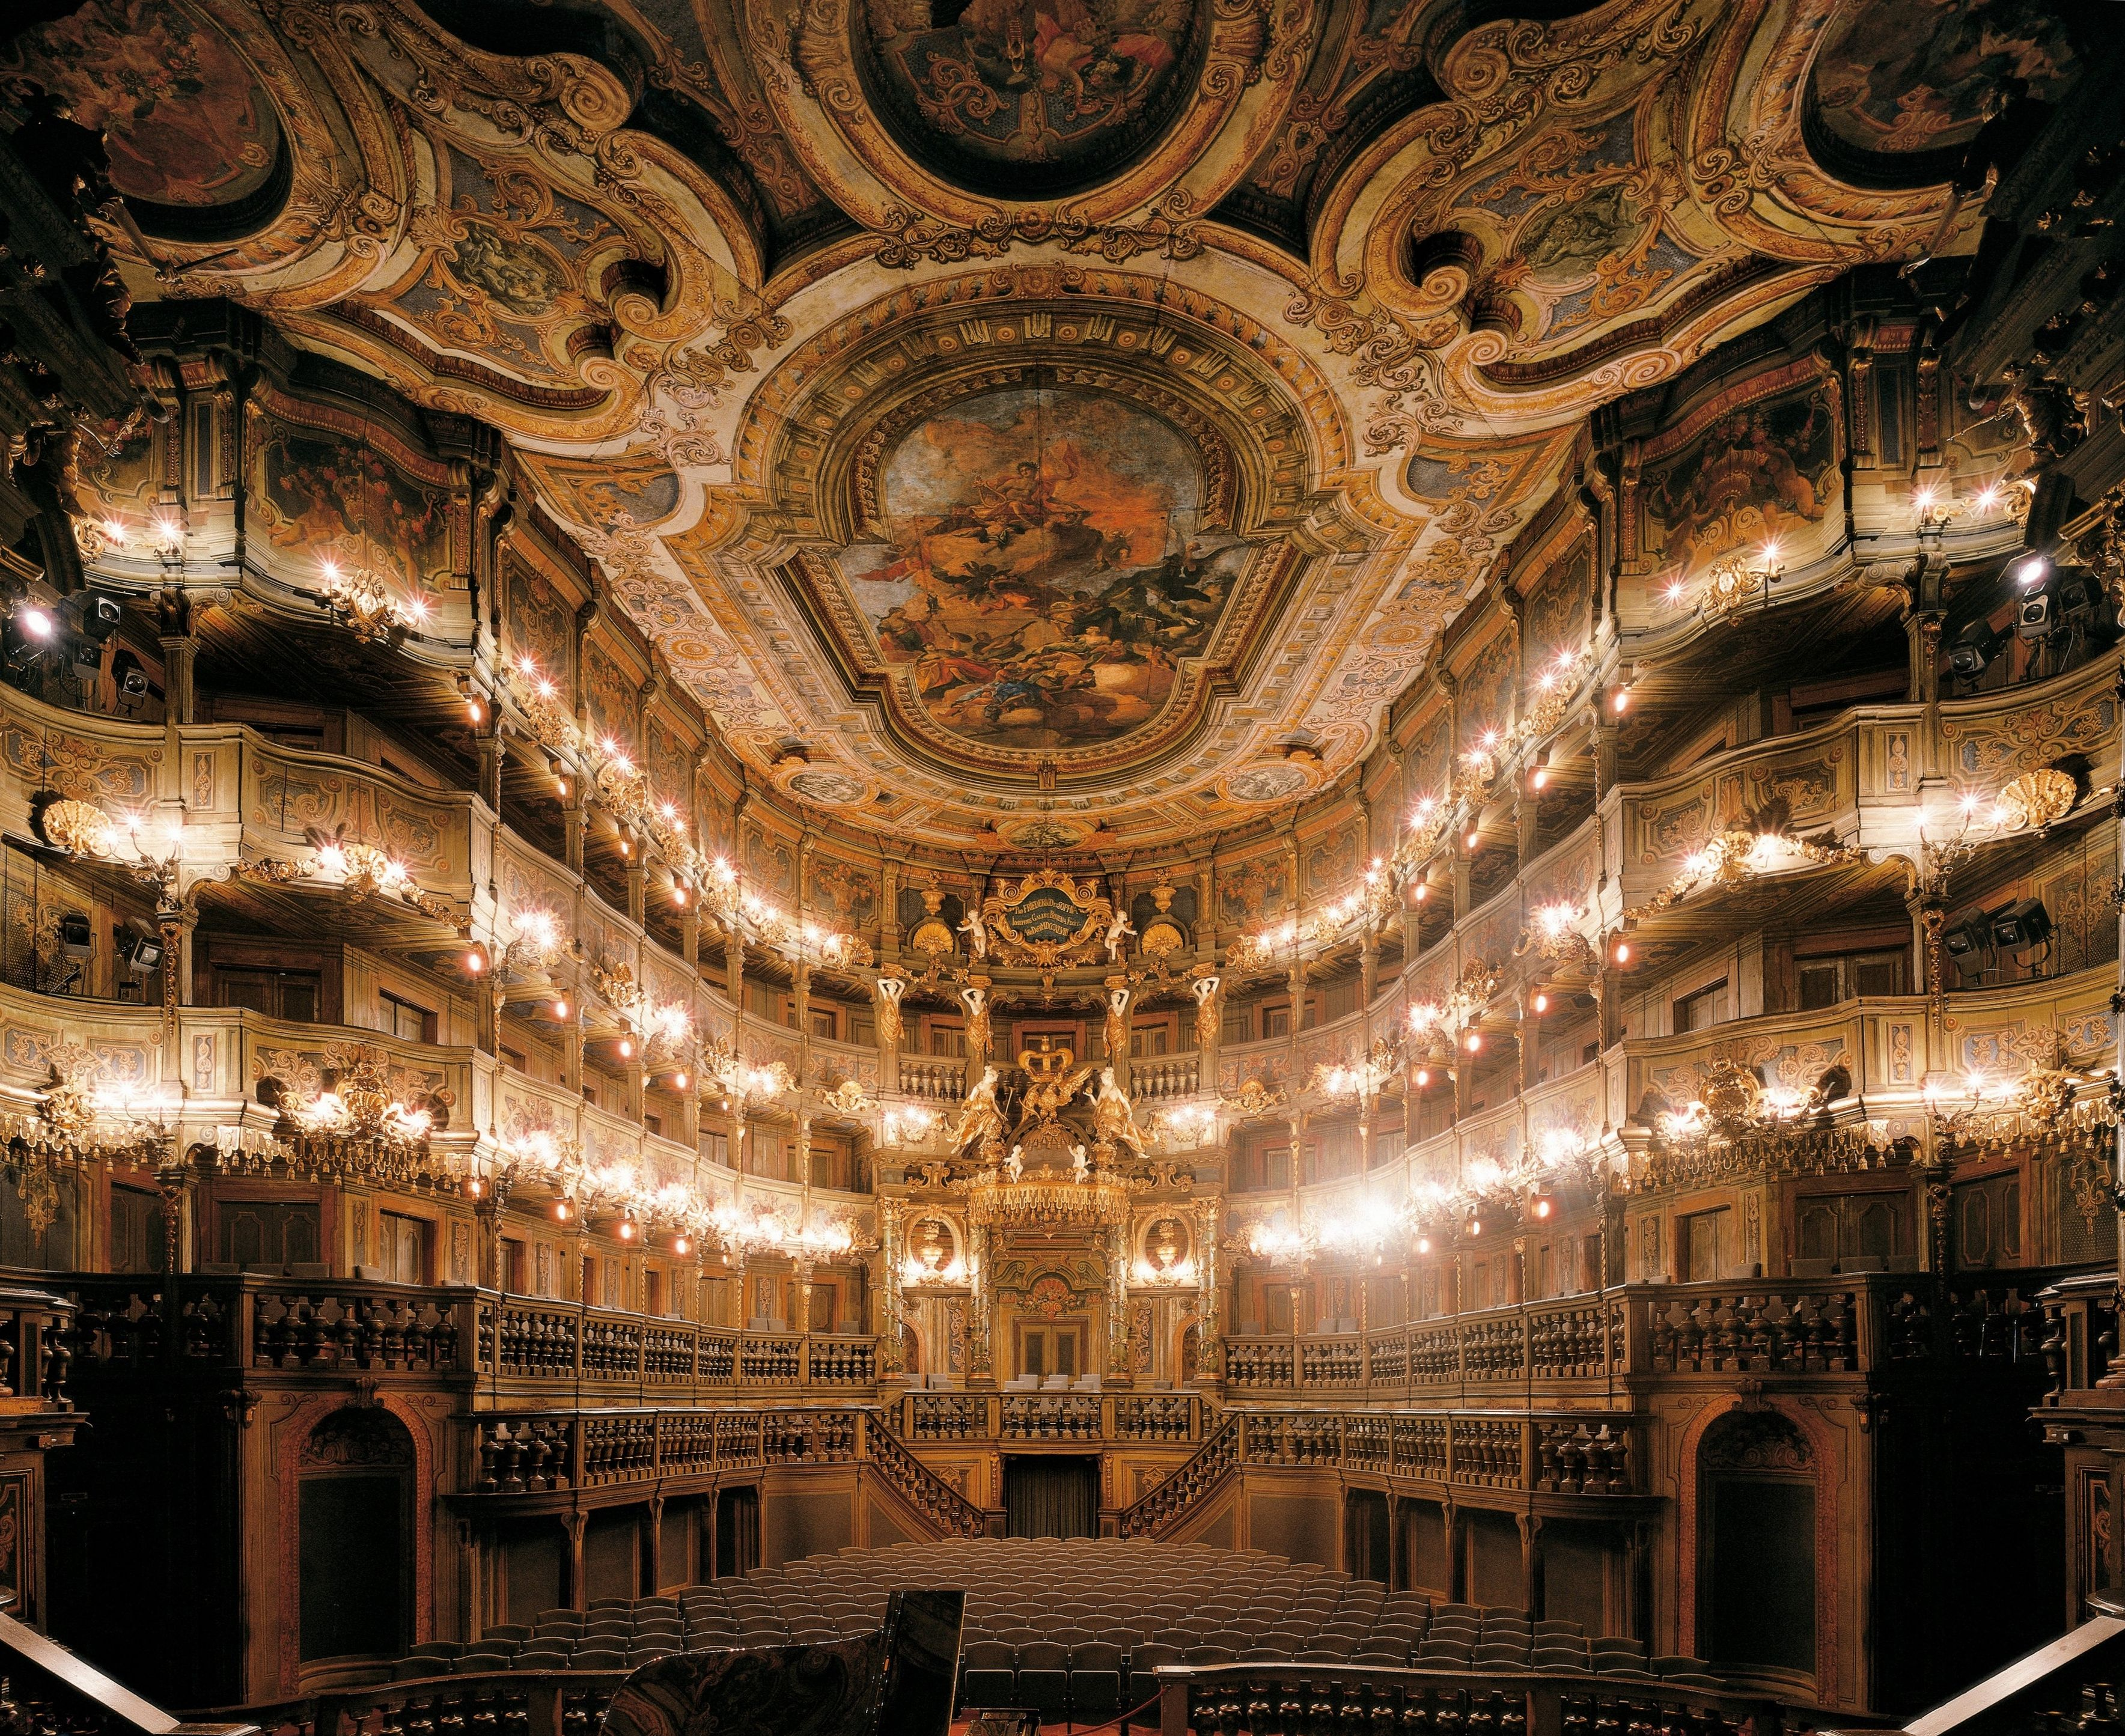 Markgrafliches Opernhaus Bayreuth Germany Bayreuth Unesco World Heritage Concert Hall Architecture